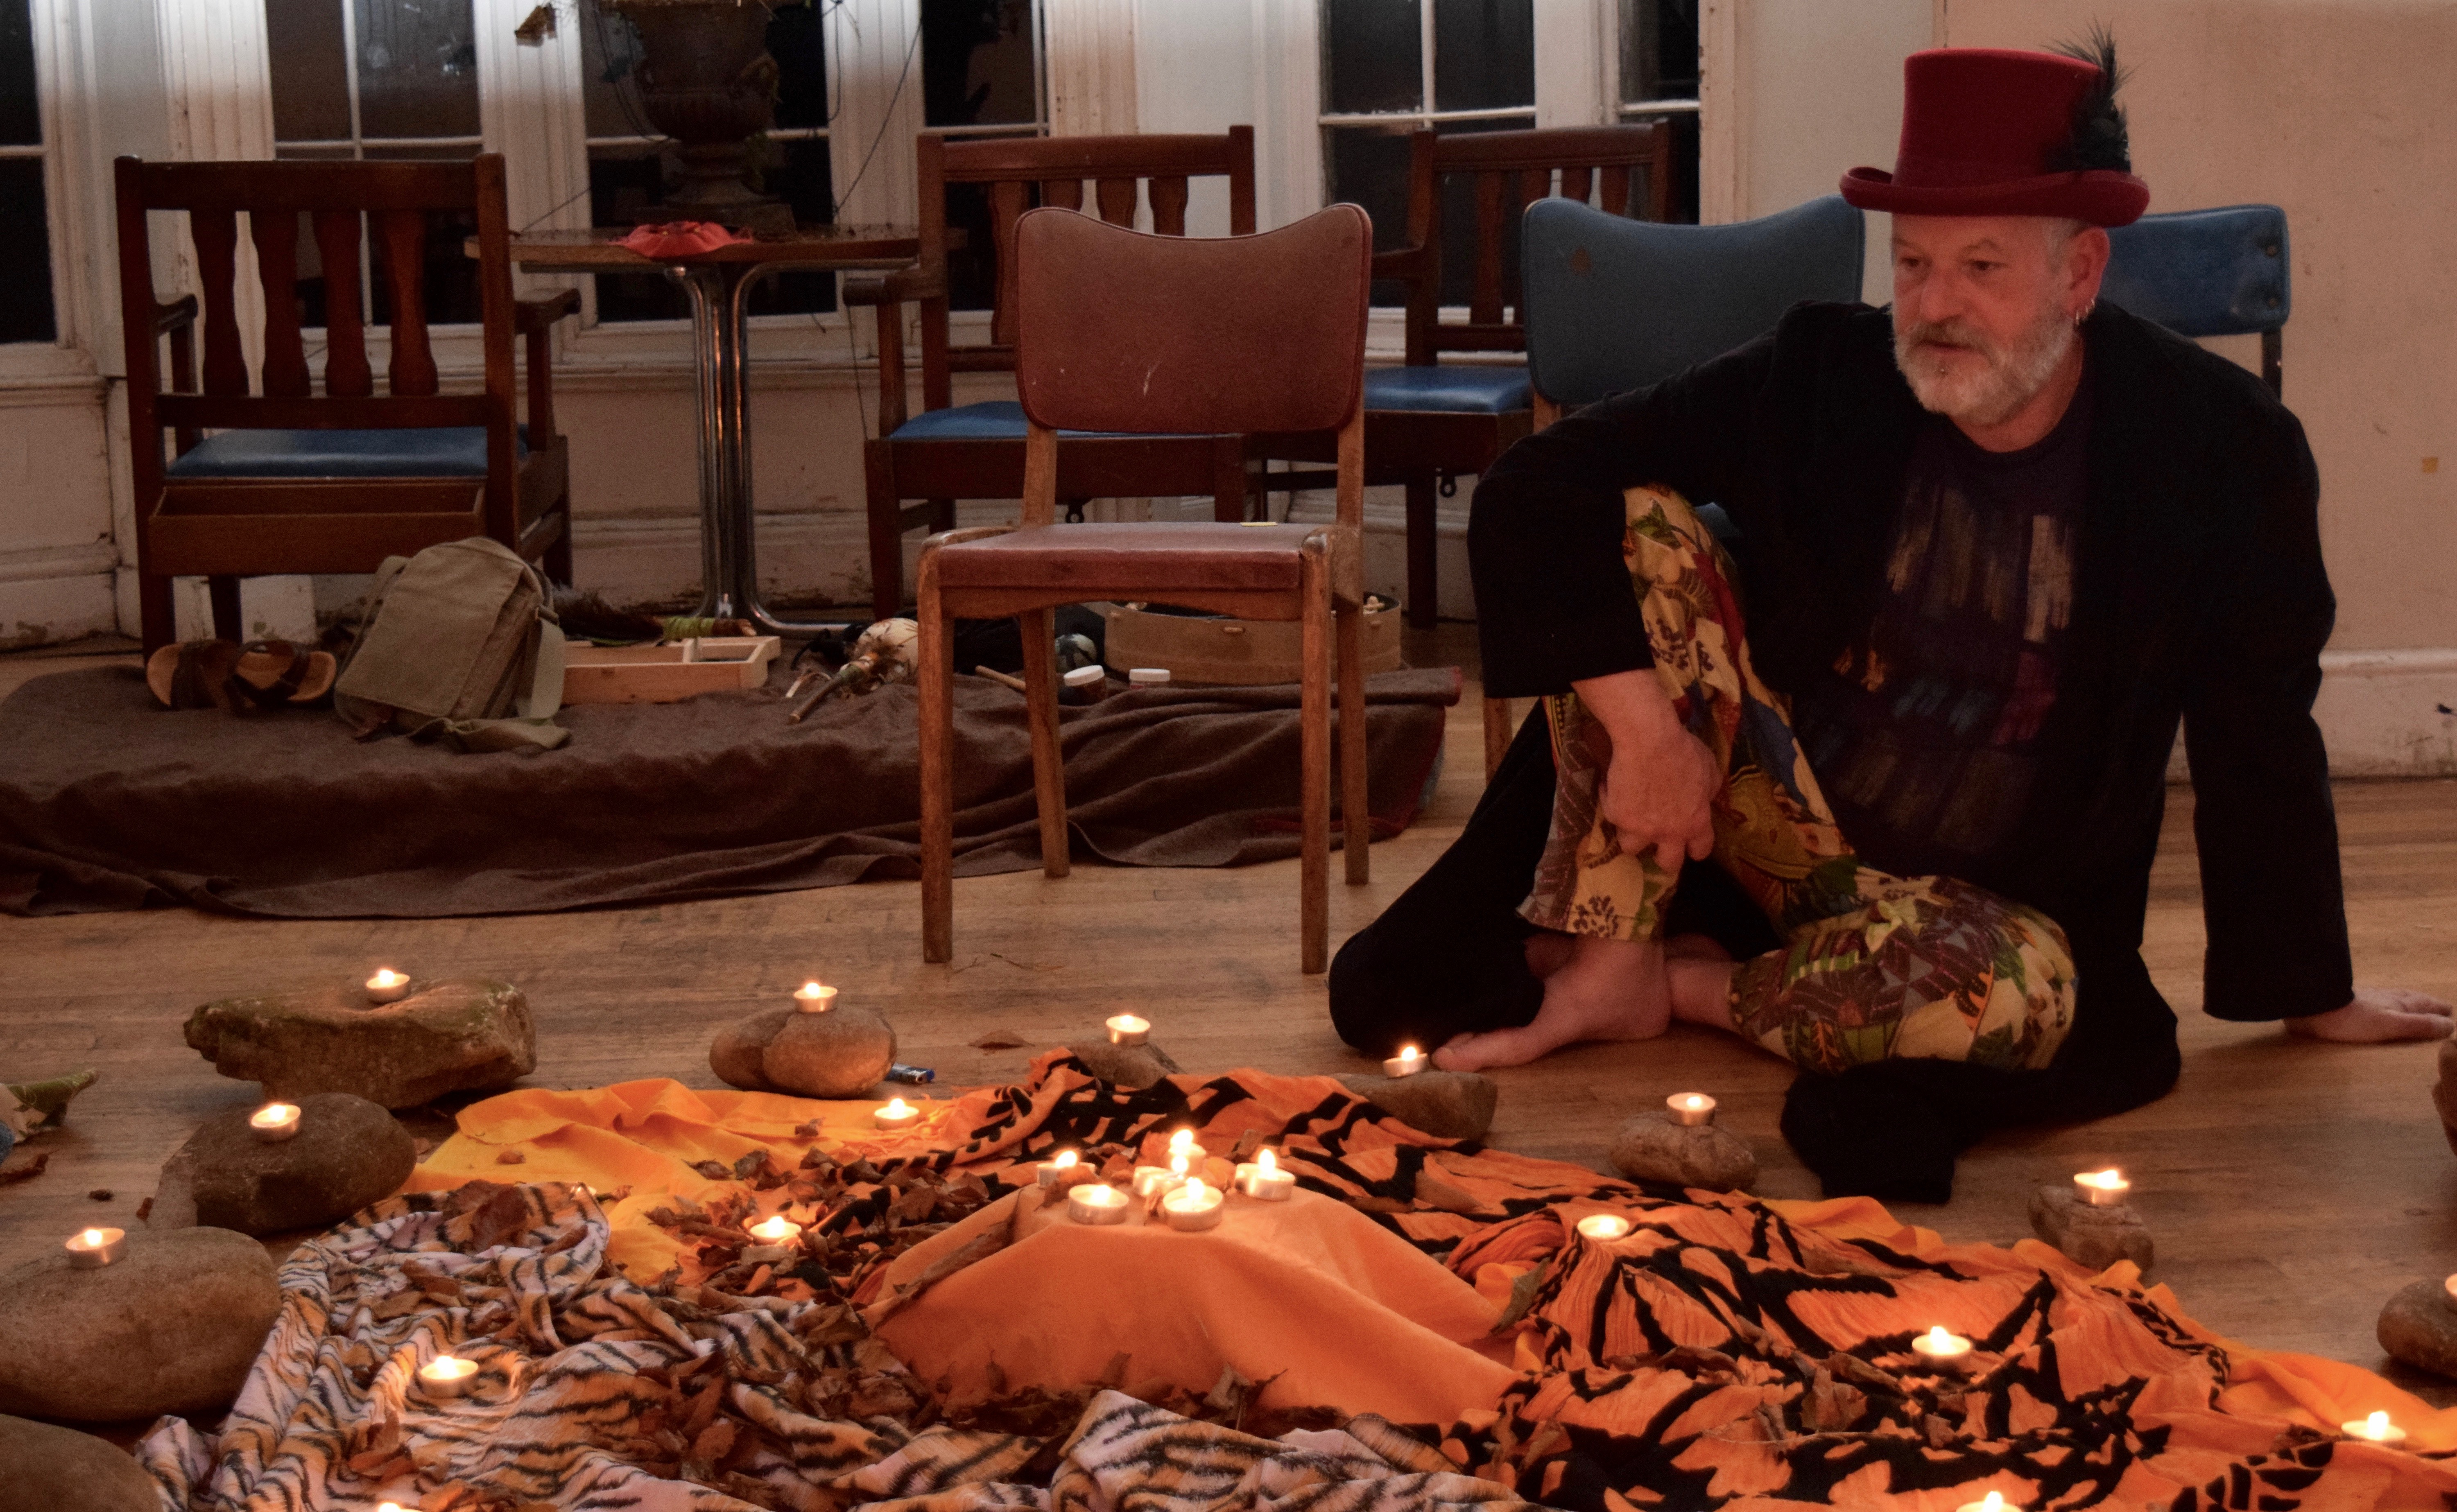 Thai Massage - Shamanism - Alternative Therapy - Ritual & Ceremony cover image